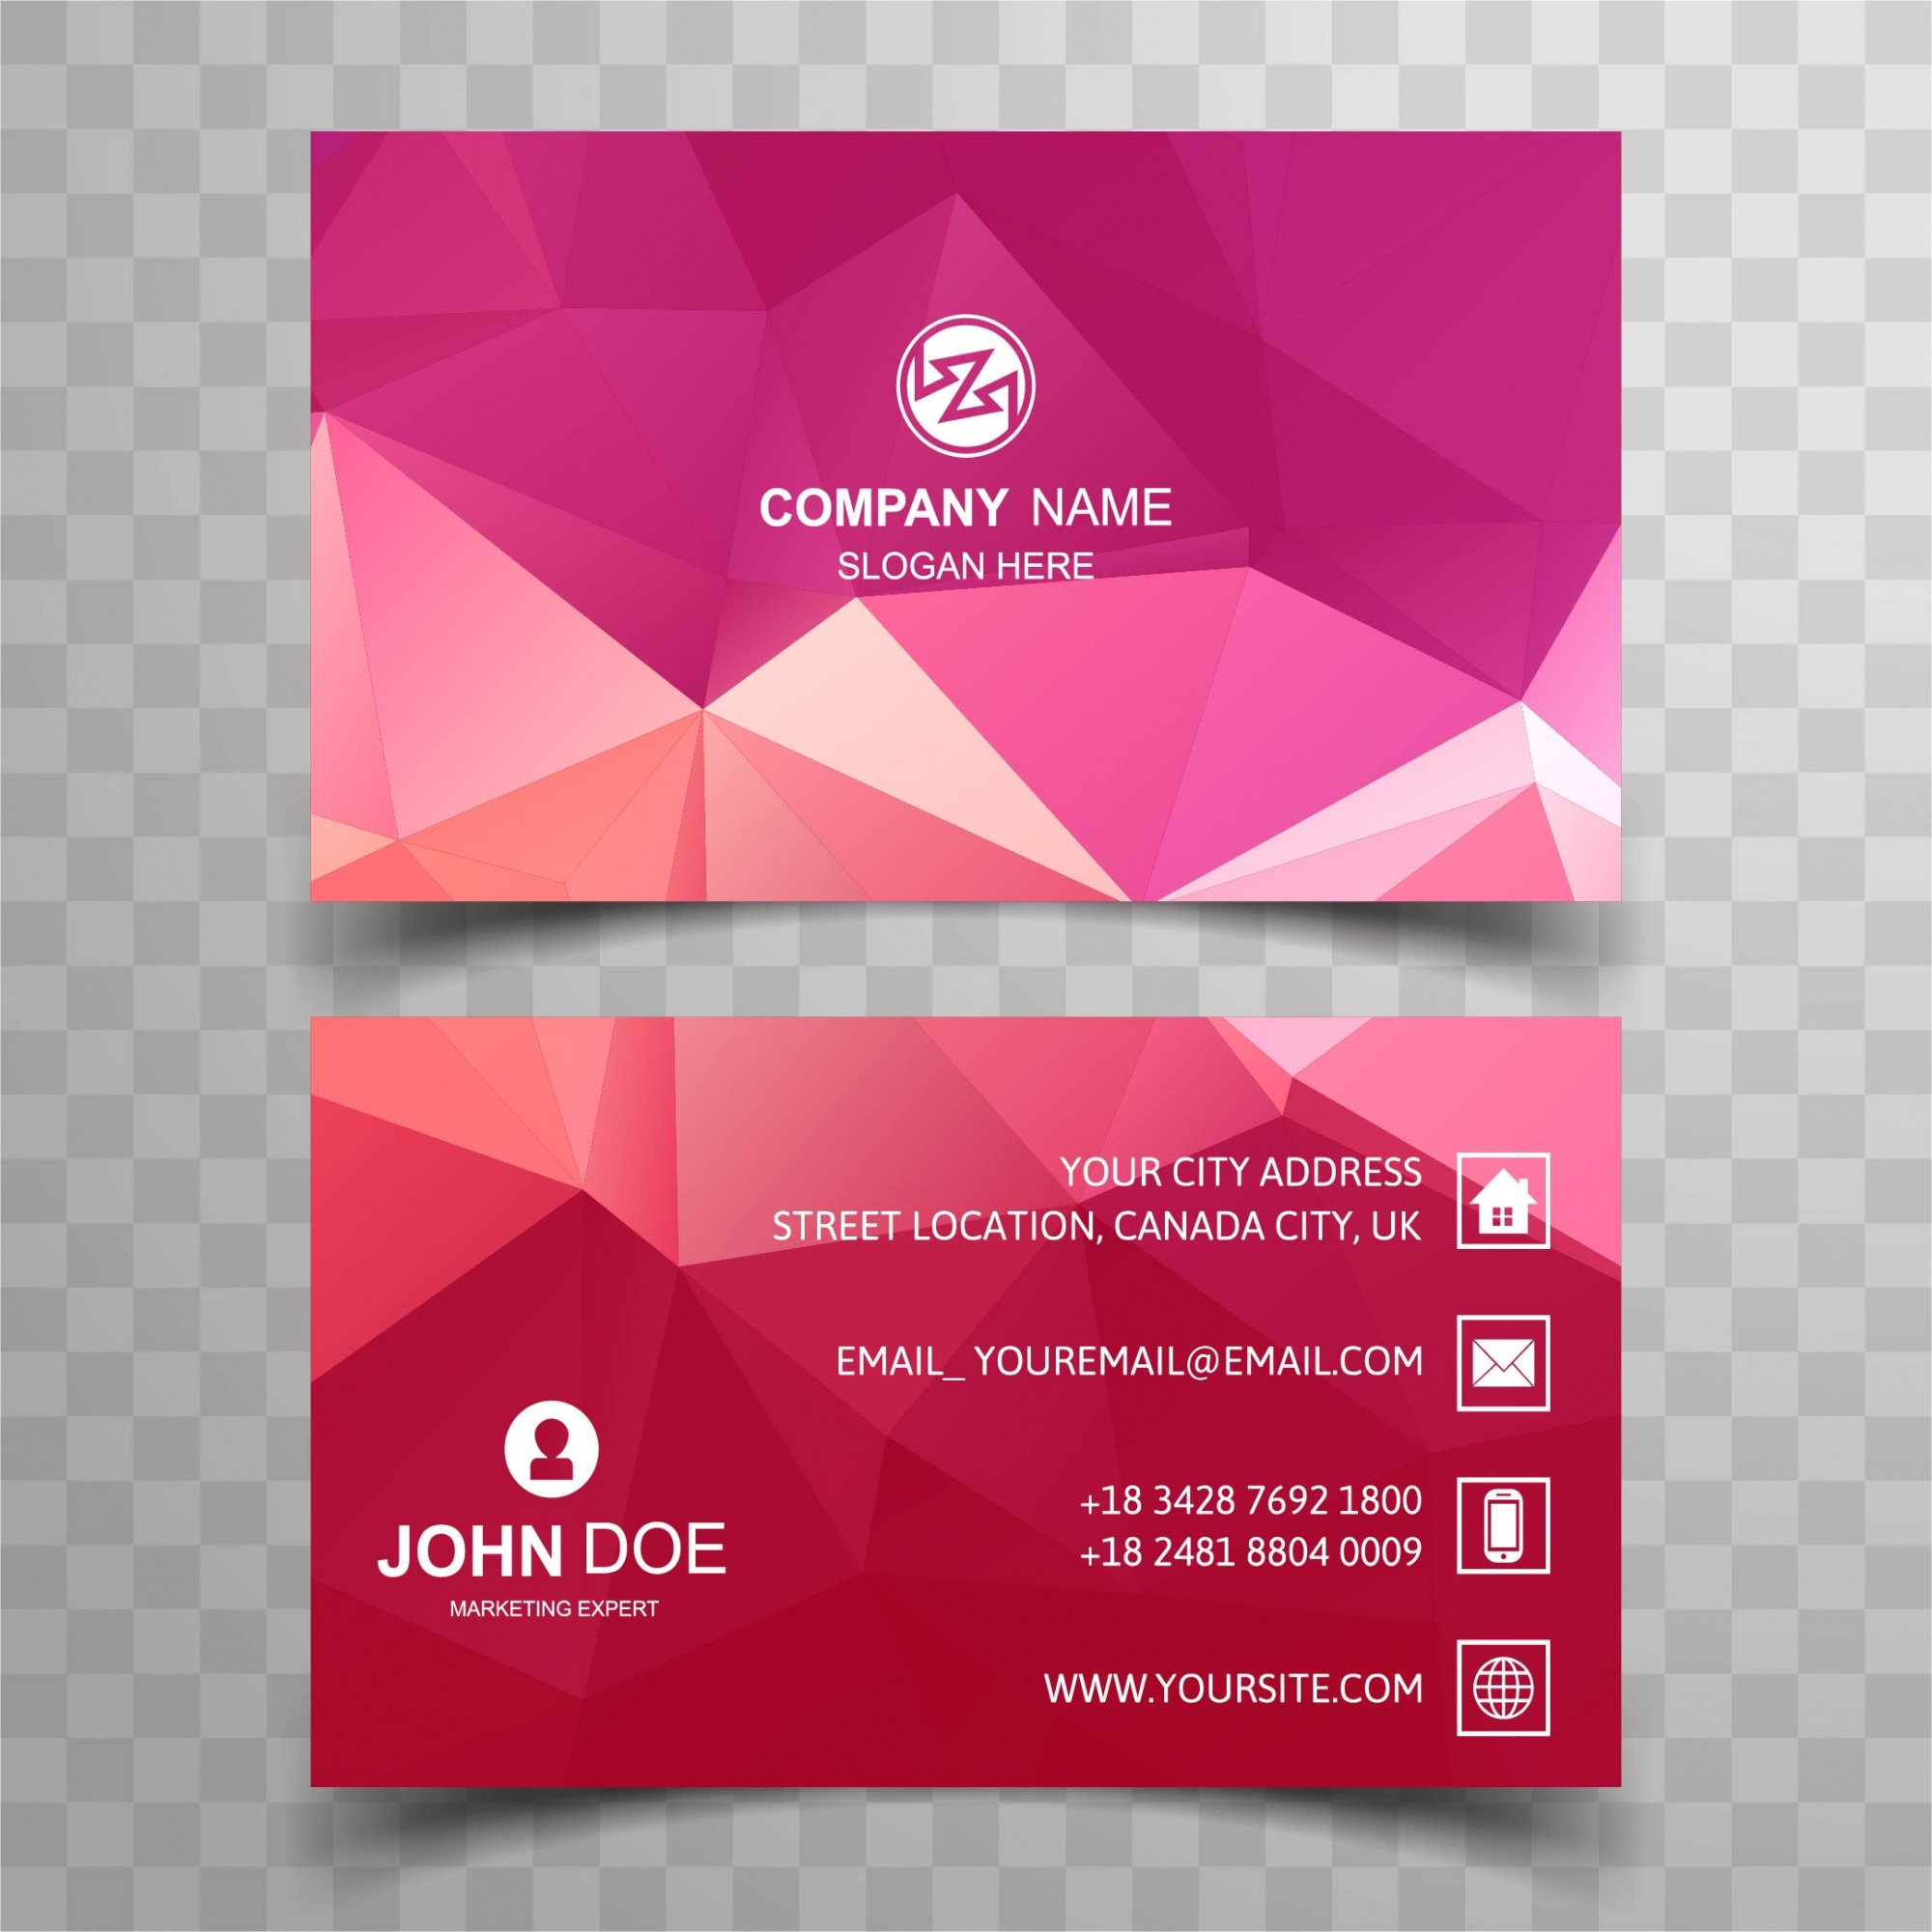 Colorful polygonal business card